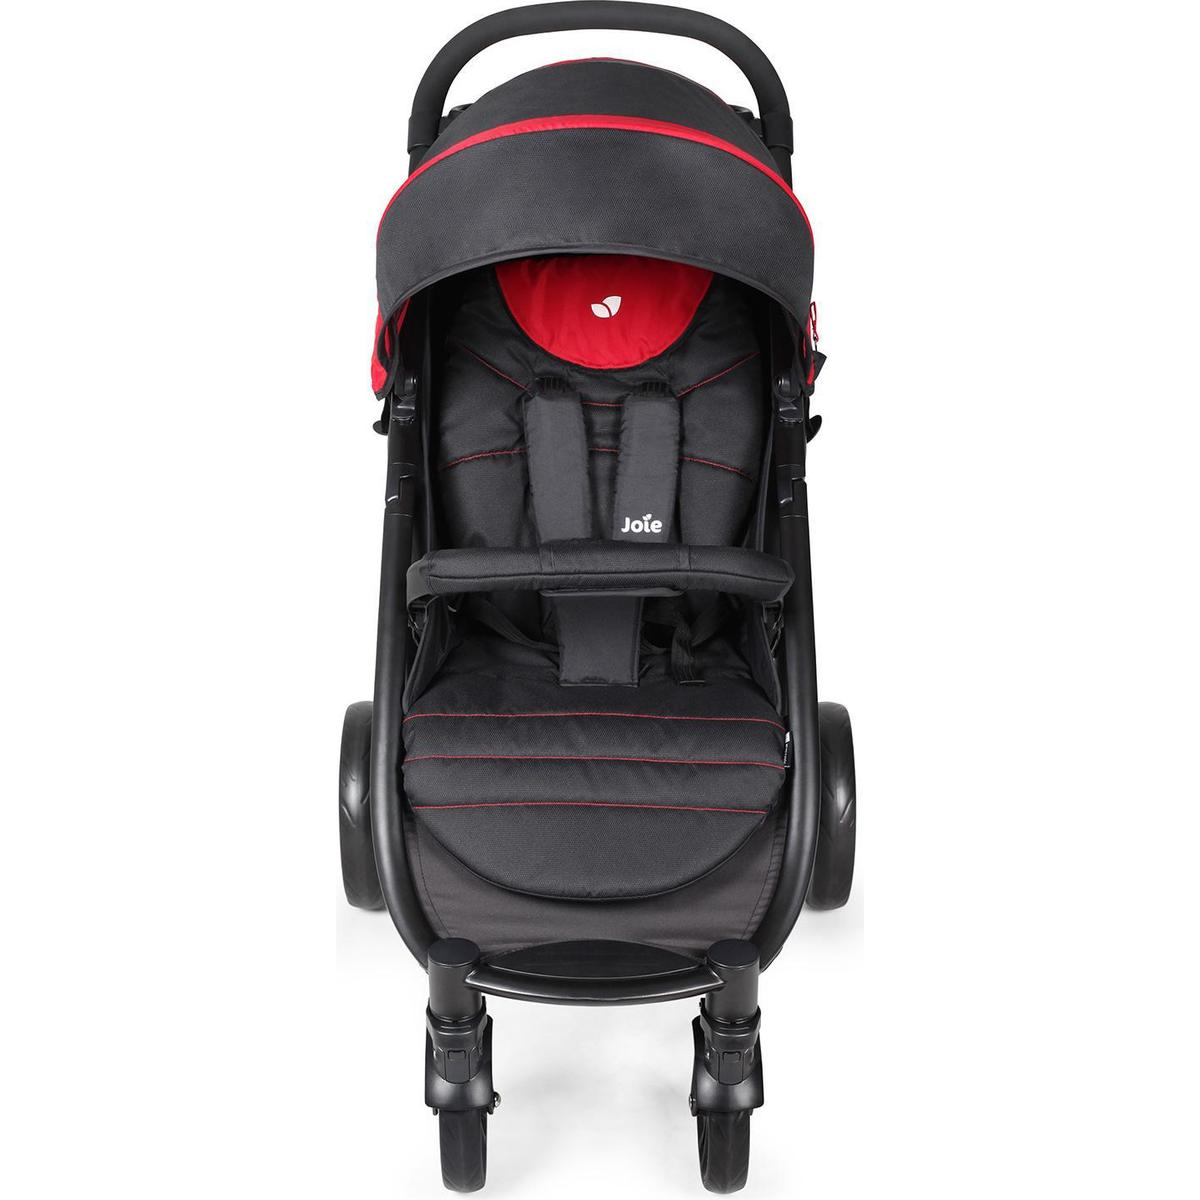 Joie Buggy Chrome Test Compare Best Joie Pushchair Prices On The Market Pricerunner